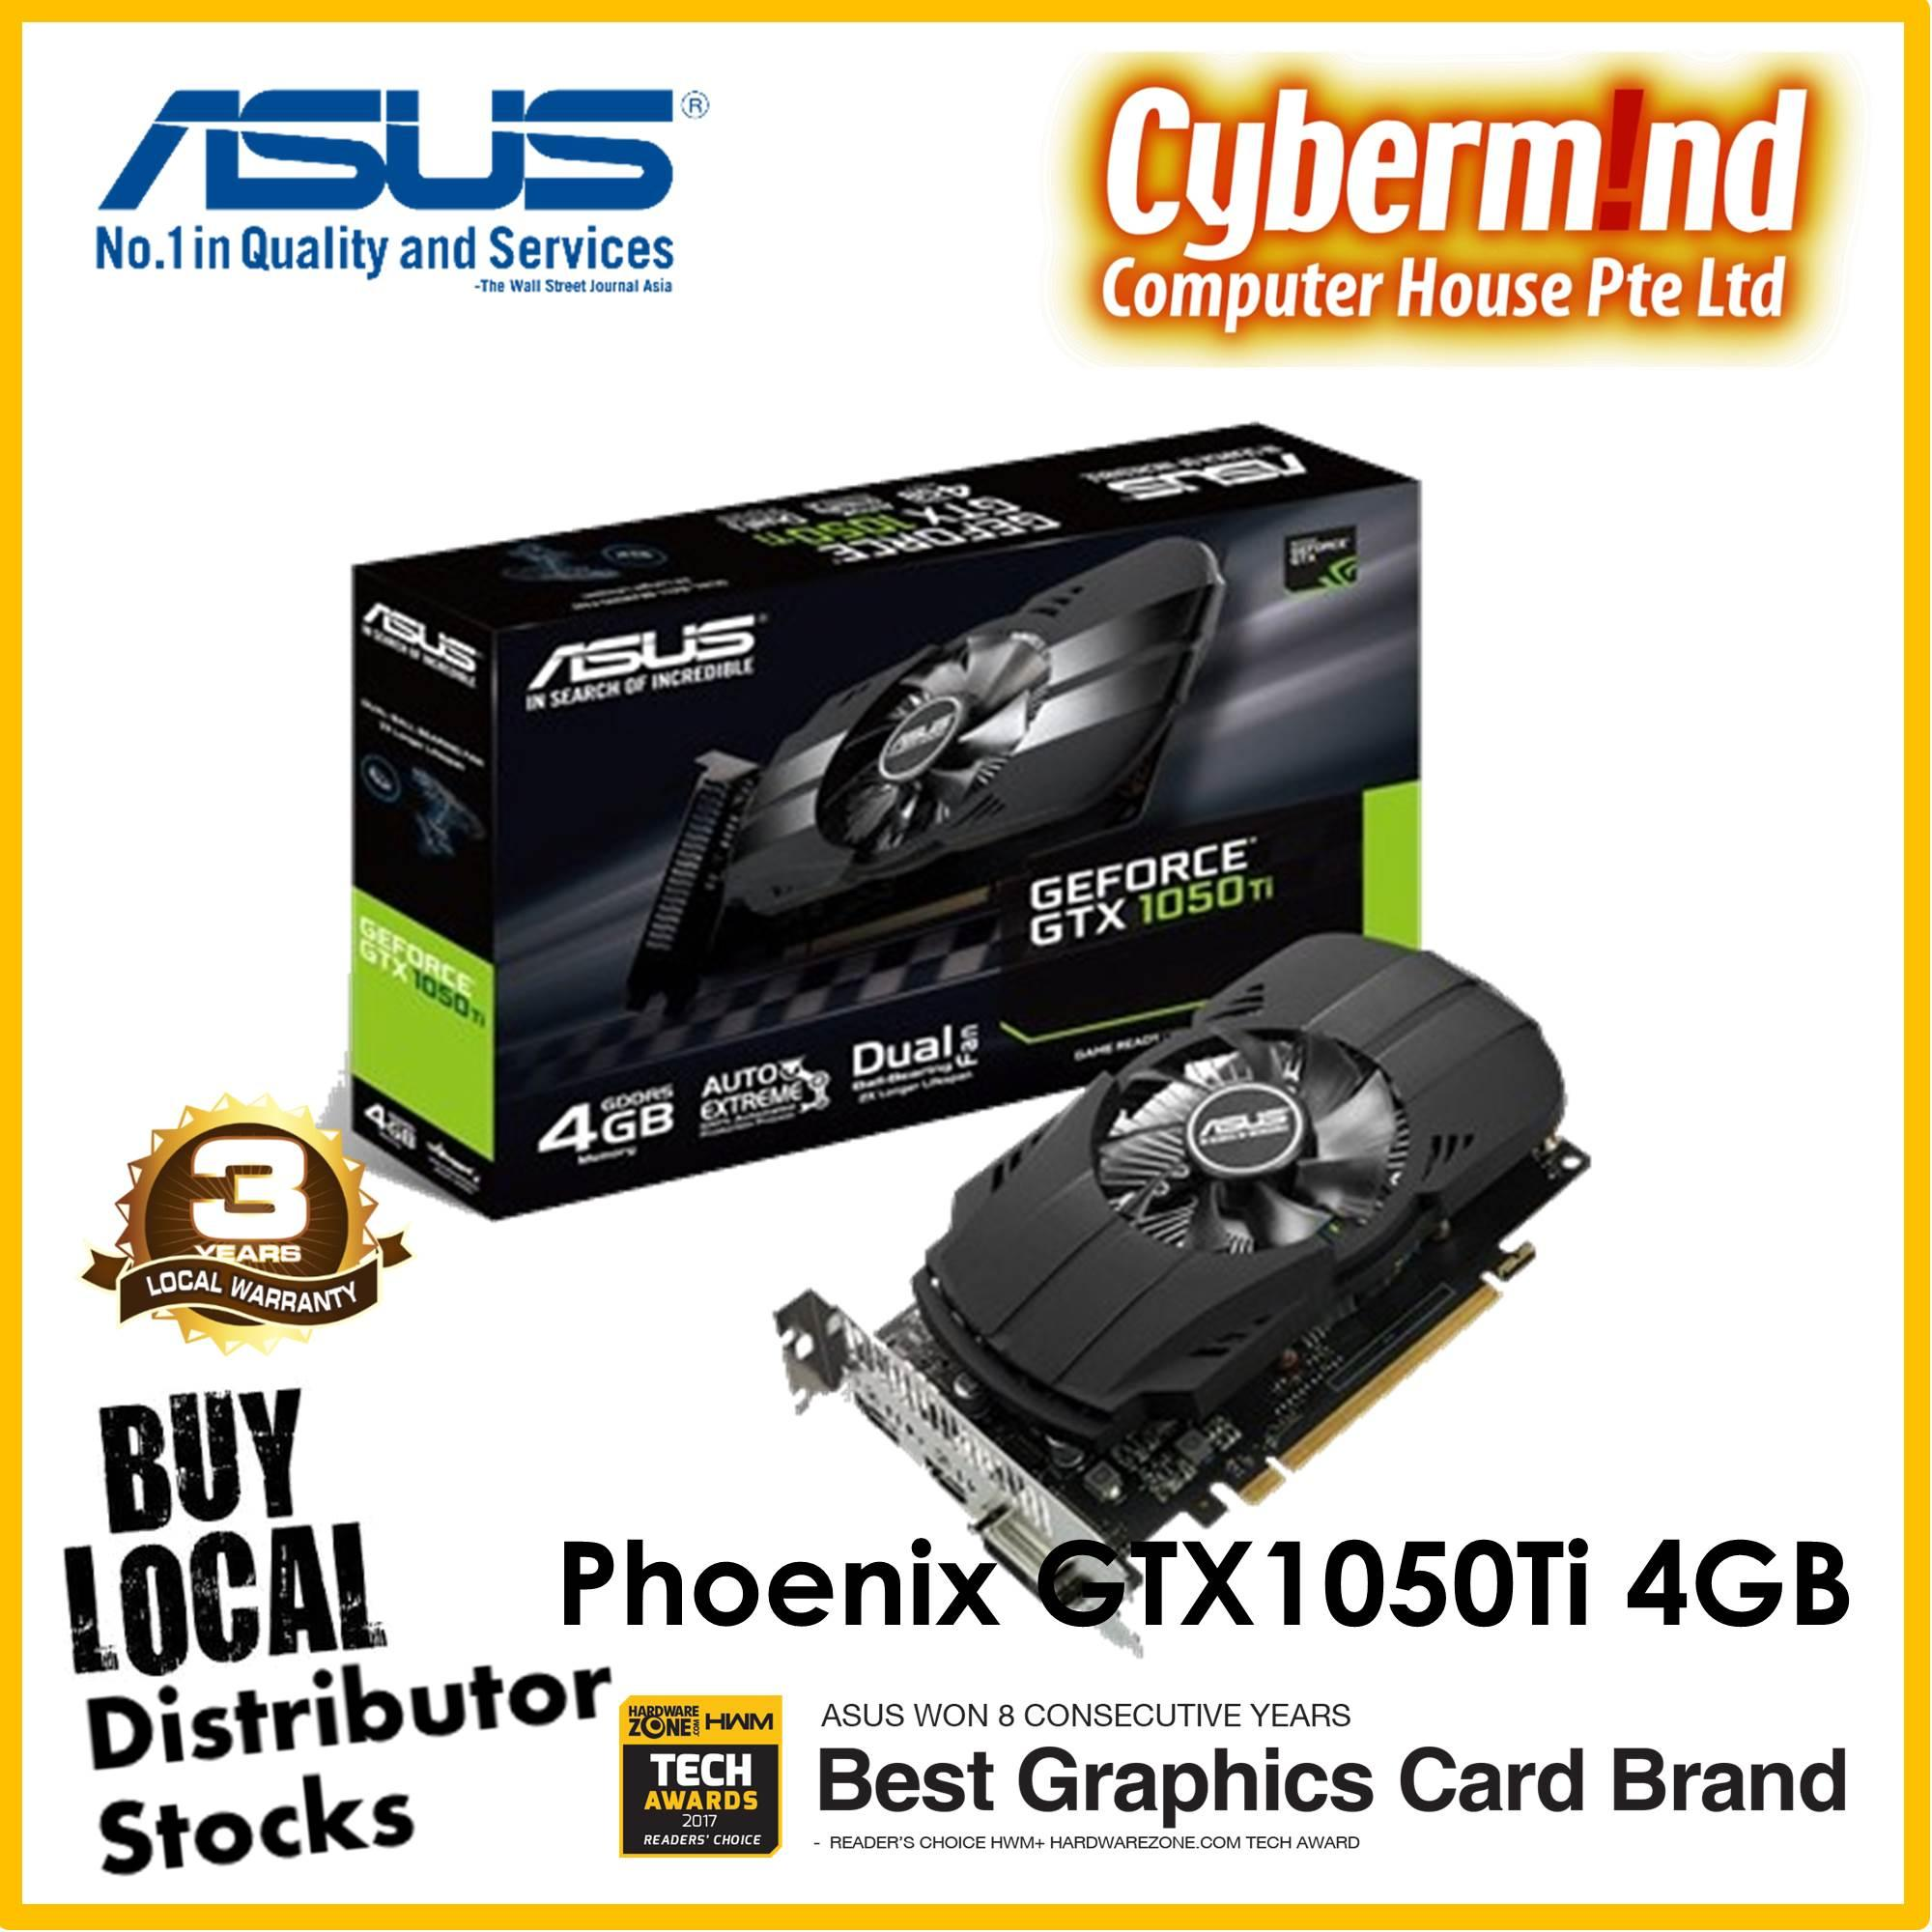 Latest Asus Graphic Cards Products Enjoy Huge Discounts Lazada Sg Geforce Gtx 1080 Ti 11gb Ddr5x Rog Poseidon Phoenix 1050 4gb Gddr5 Graphics Card